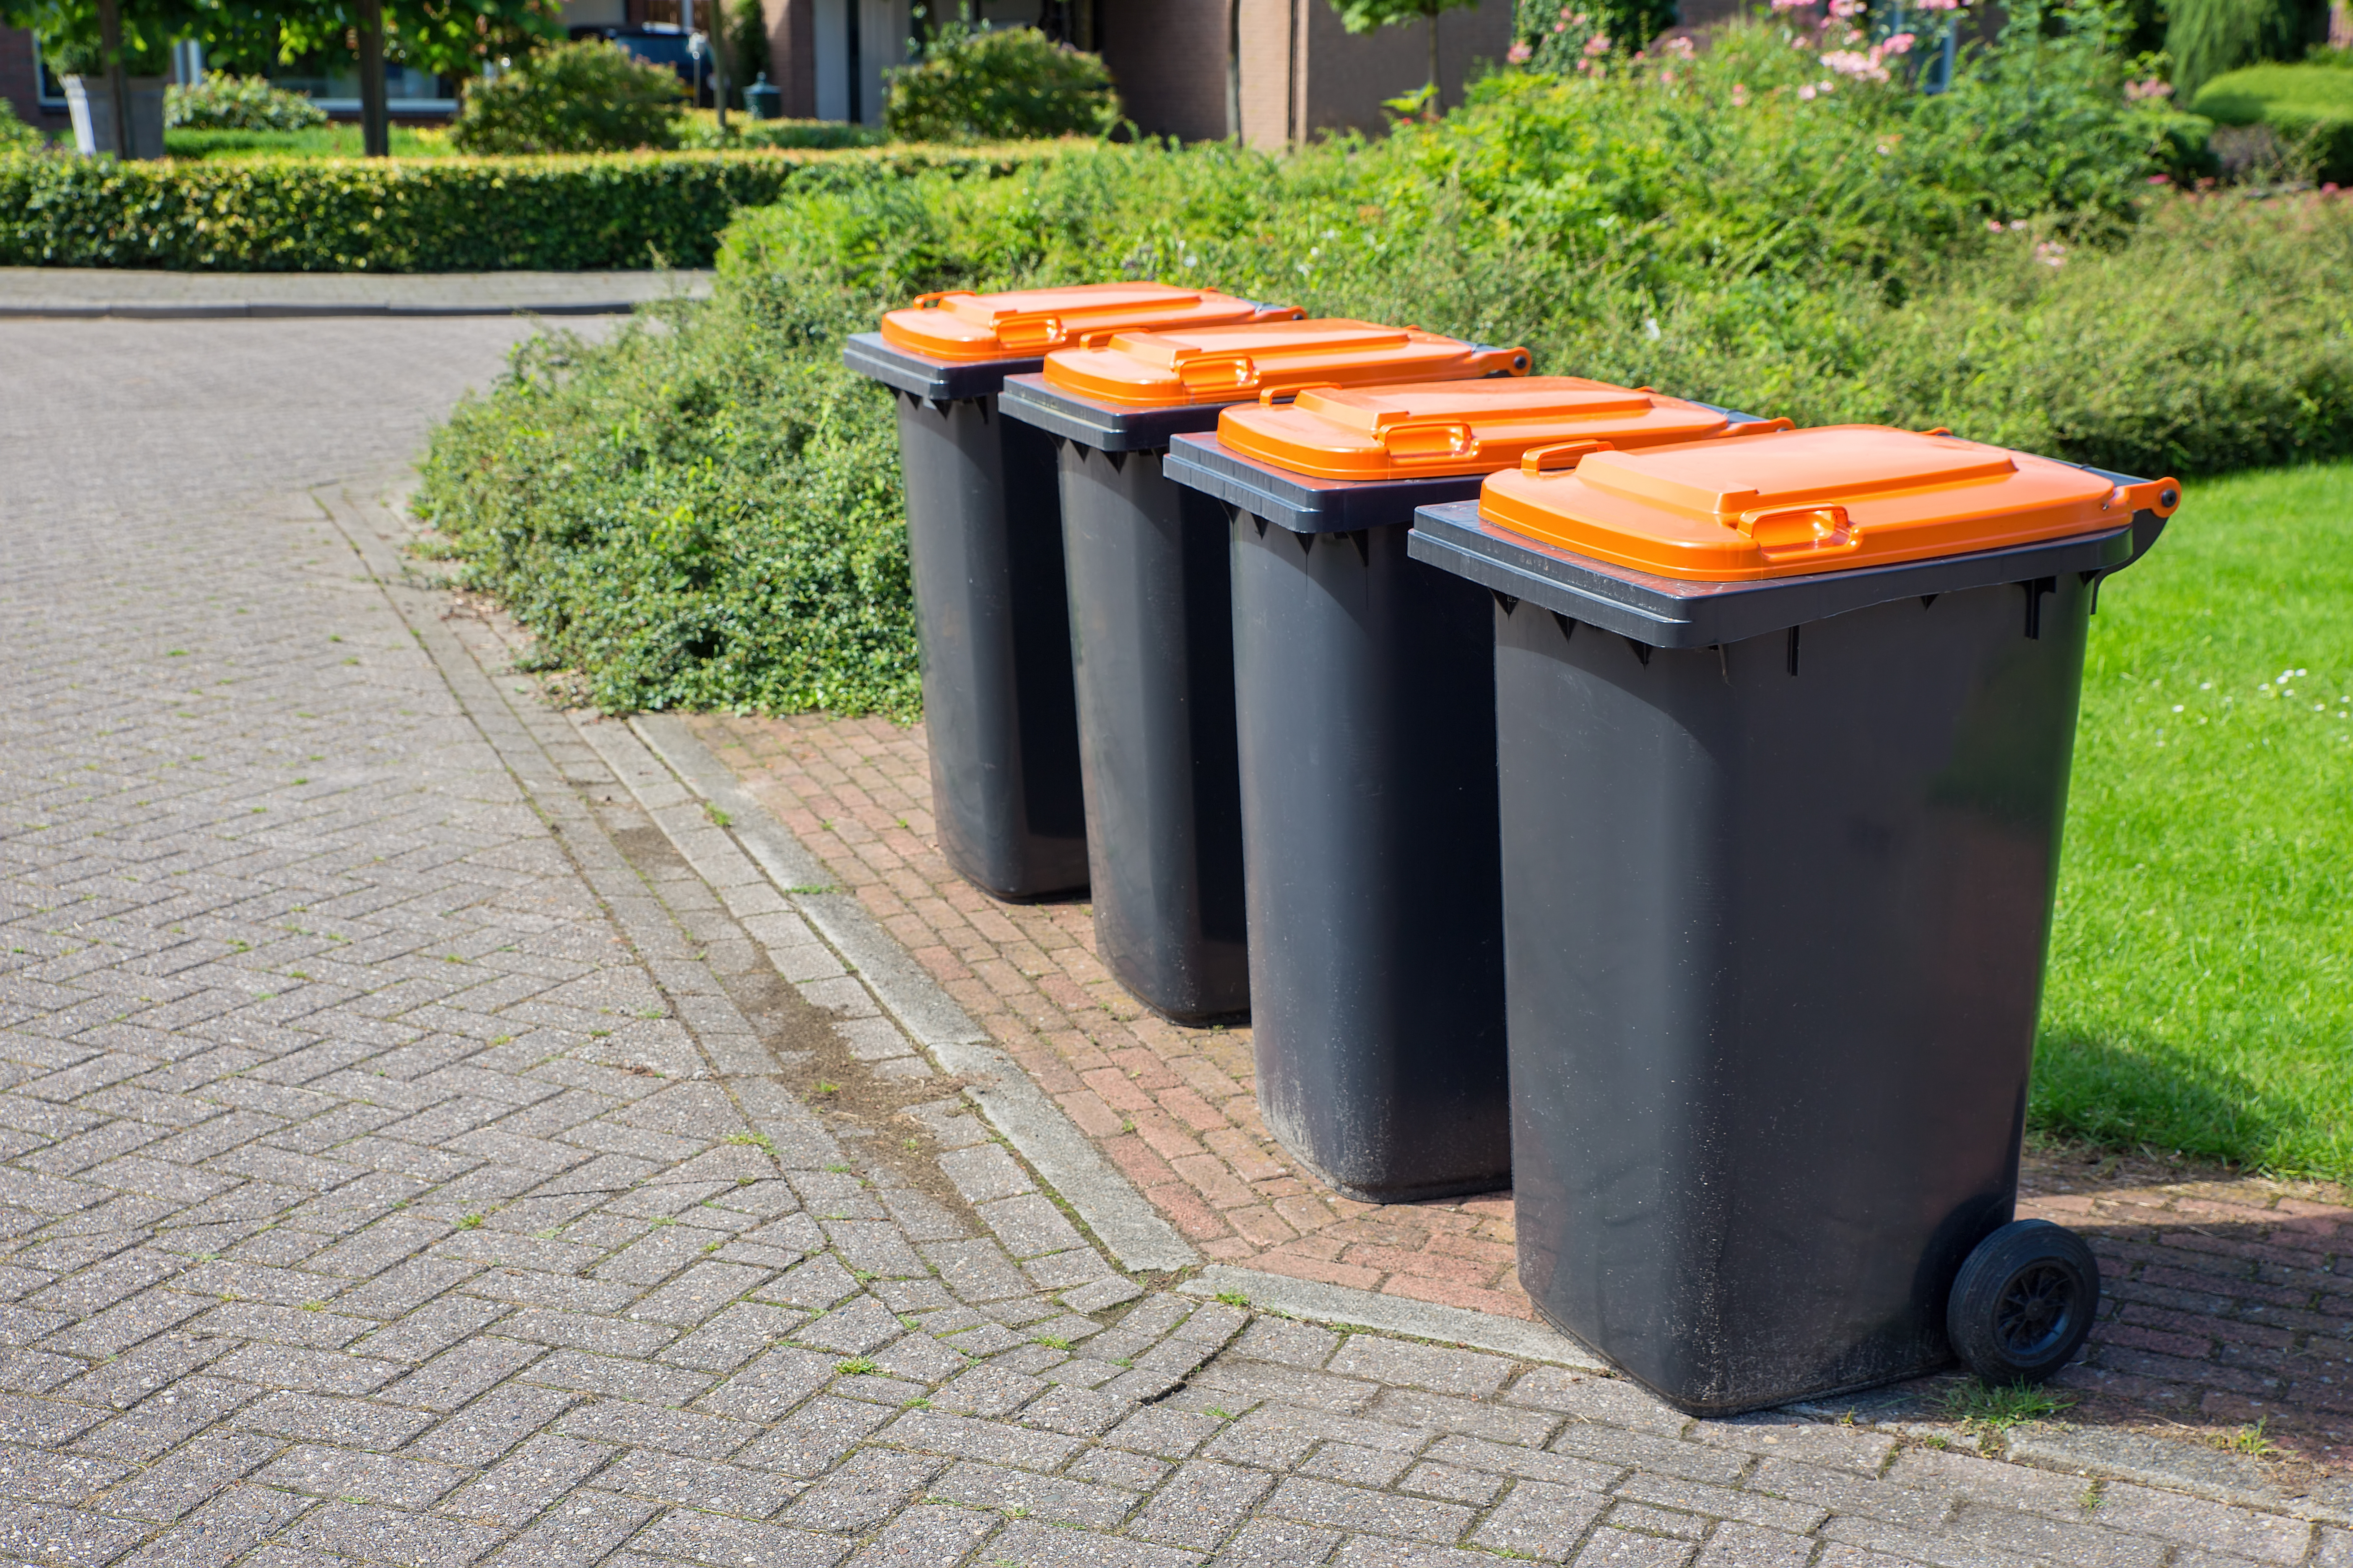 Dustbin Cleaning Services